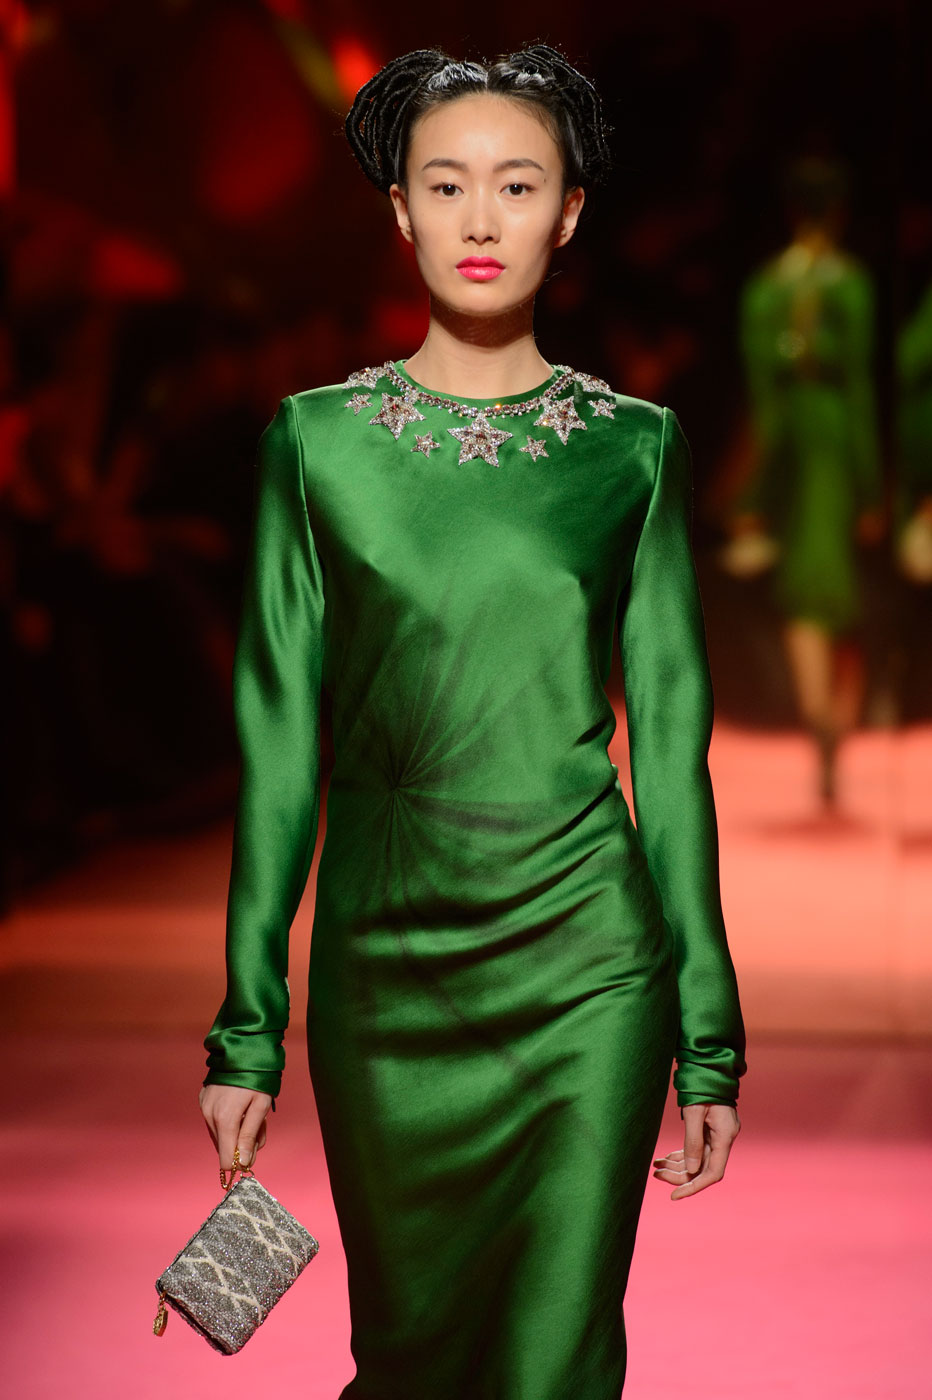 Schiaparelli-fashion-runway-show-haute-couture-paris-spring-summer-2015-the-impression-27